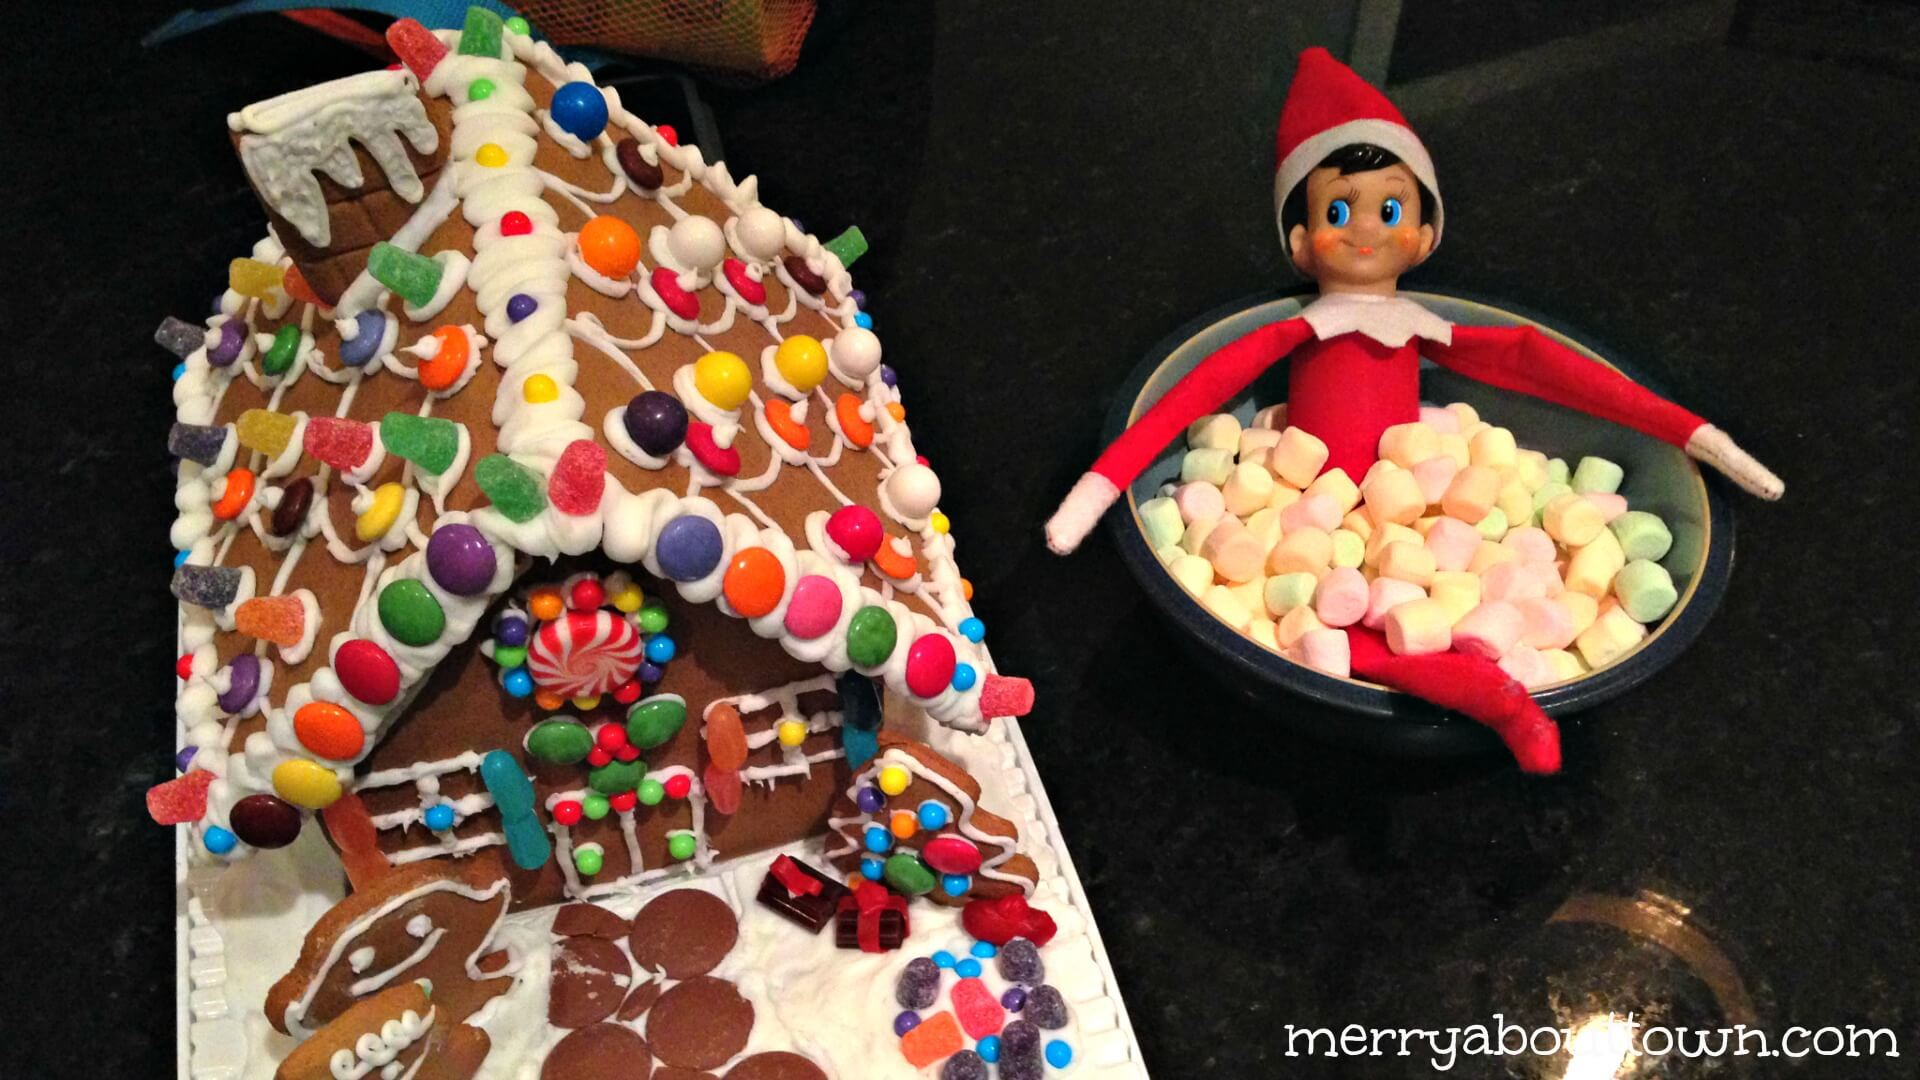 Elf on the shelf in a marshmallow hot tub